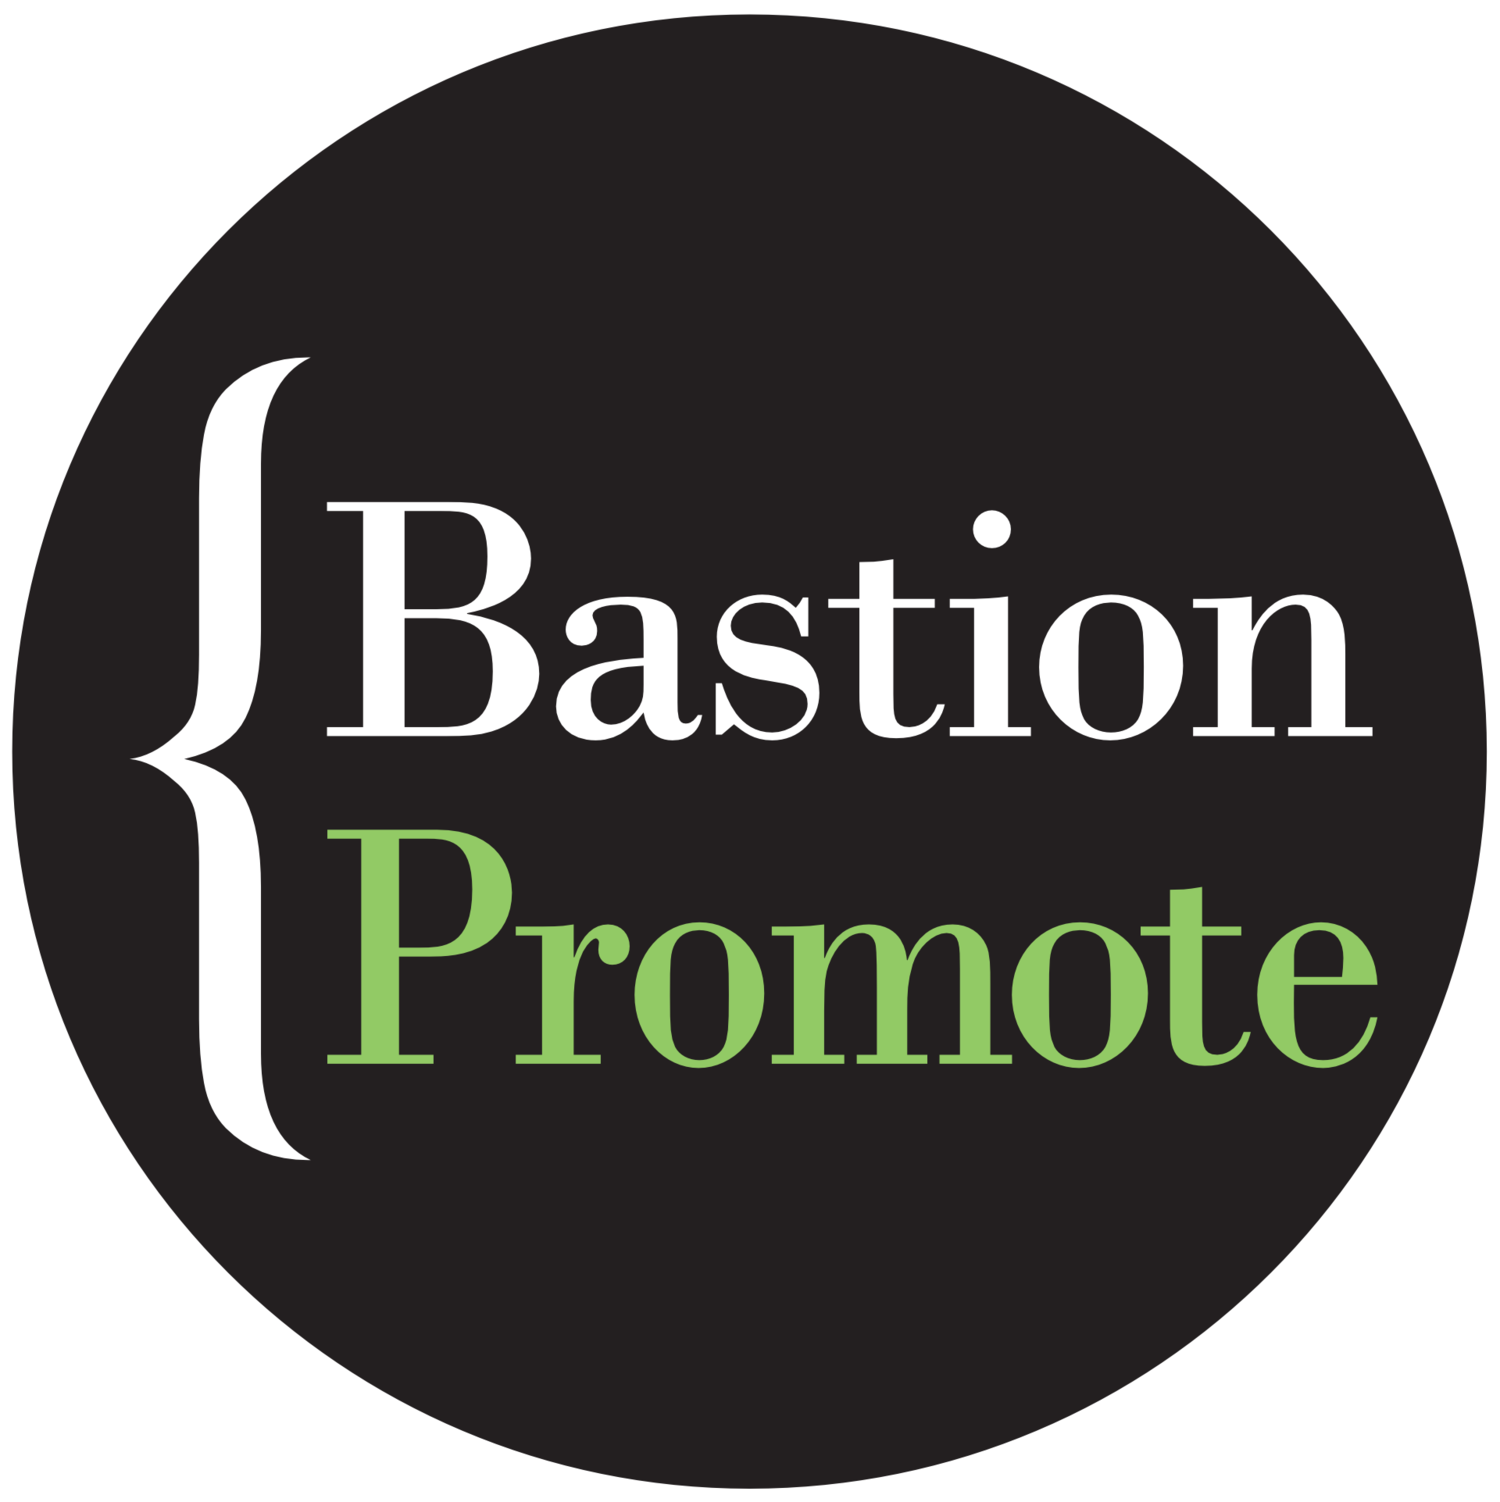 Bastion Promote